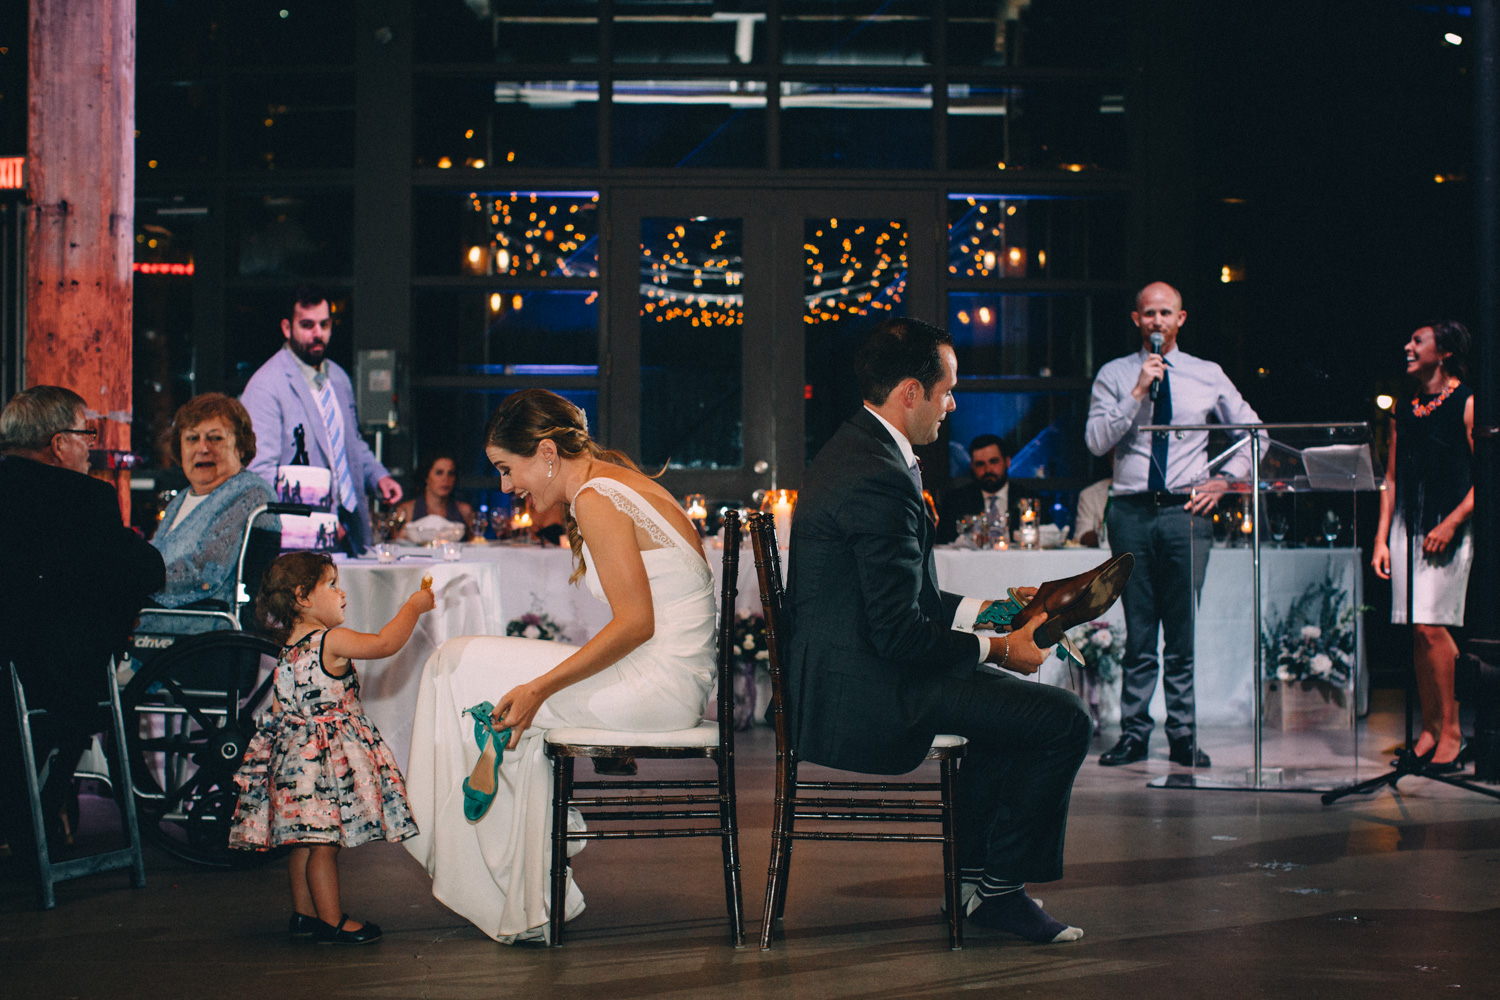 Steam-Whistle-Brewery-wedding-photos-Toronto-wedding-photography-by-Sam-Wong-of-Artanis-Collective_53.jpg